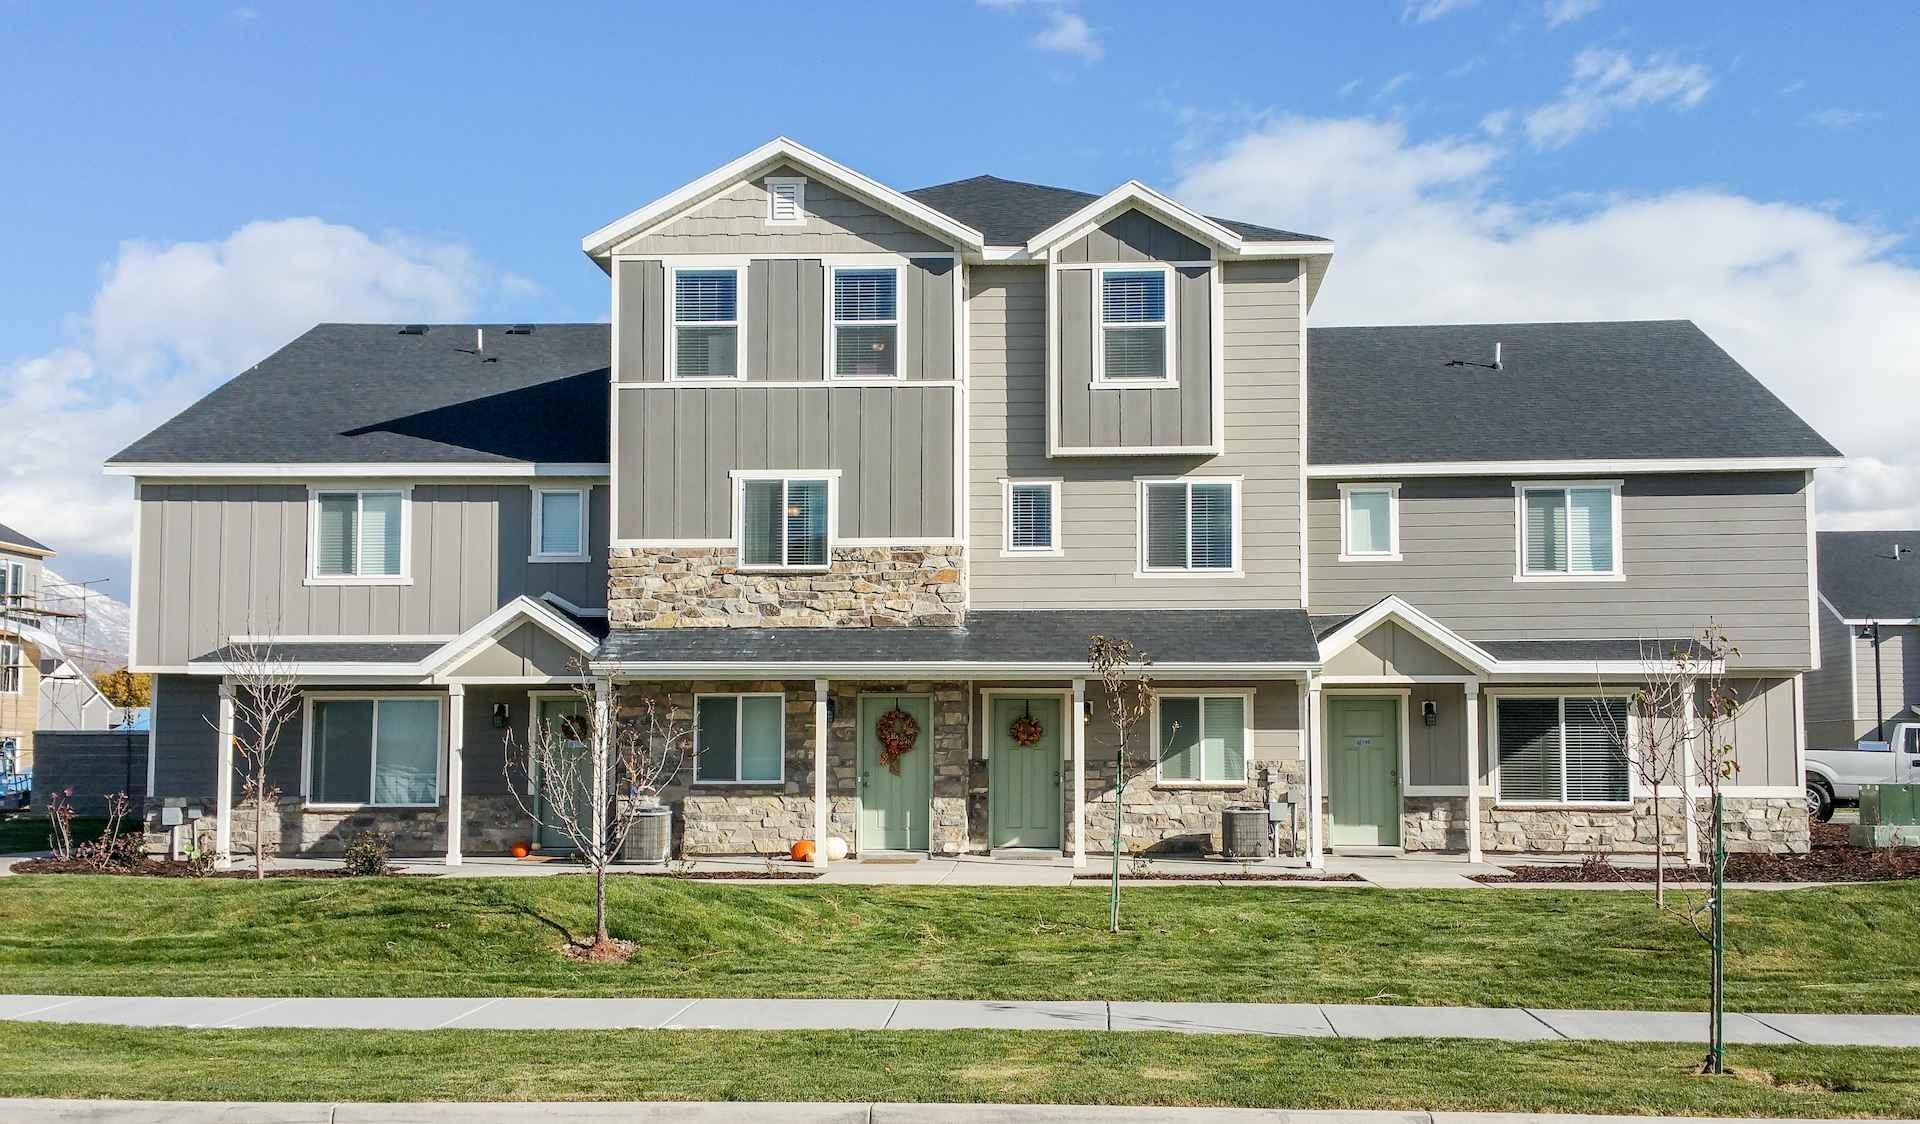 Village at Brickyard, fourplex development in Boise Valley